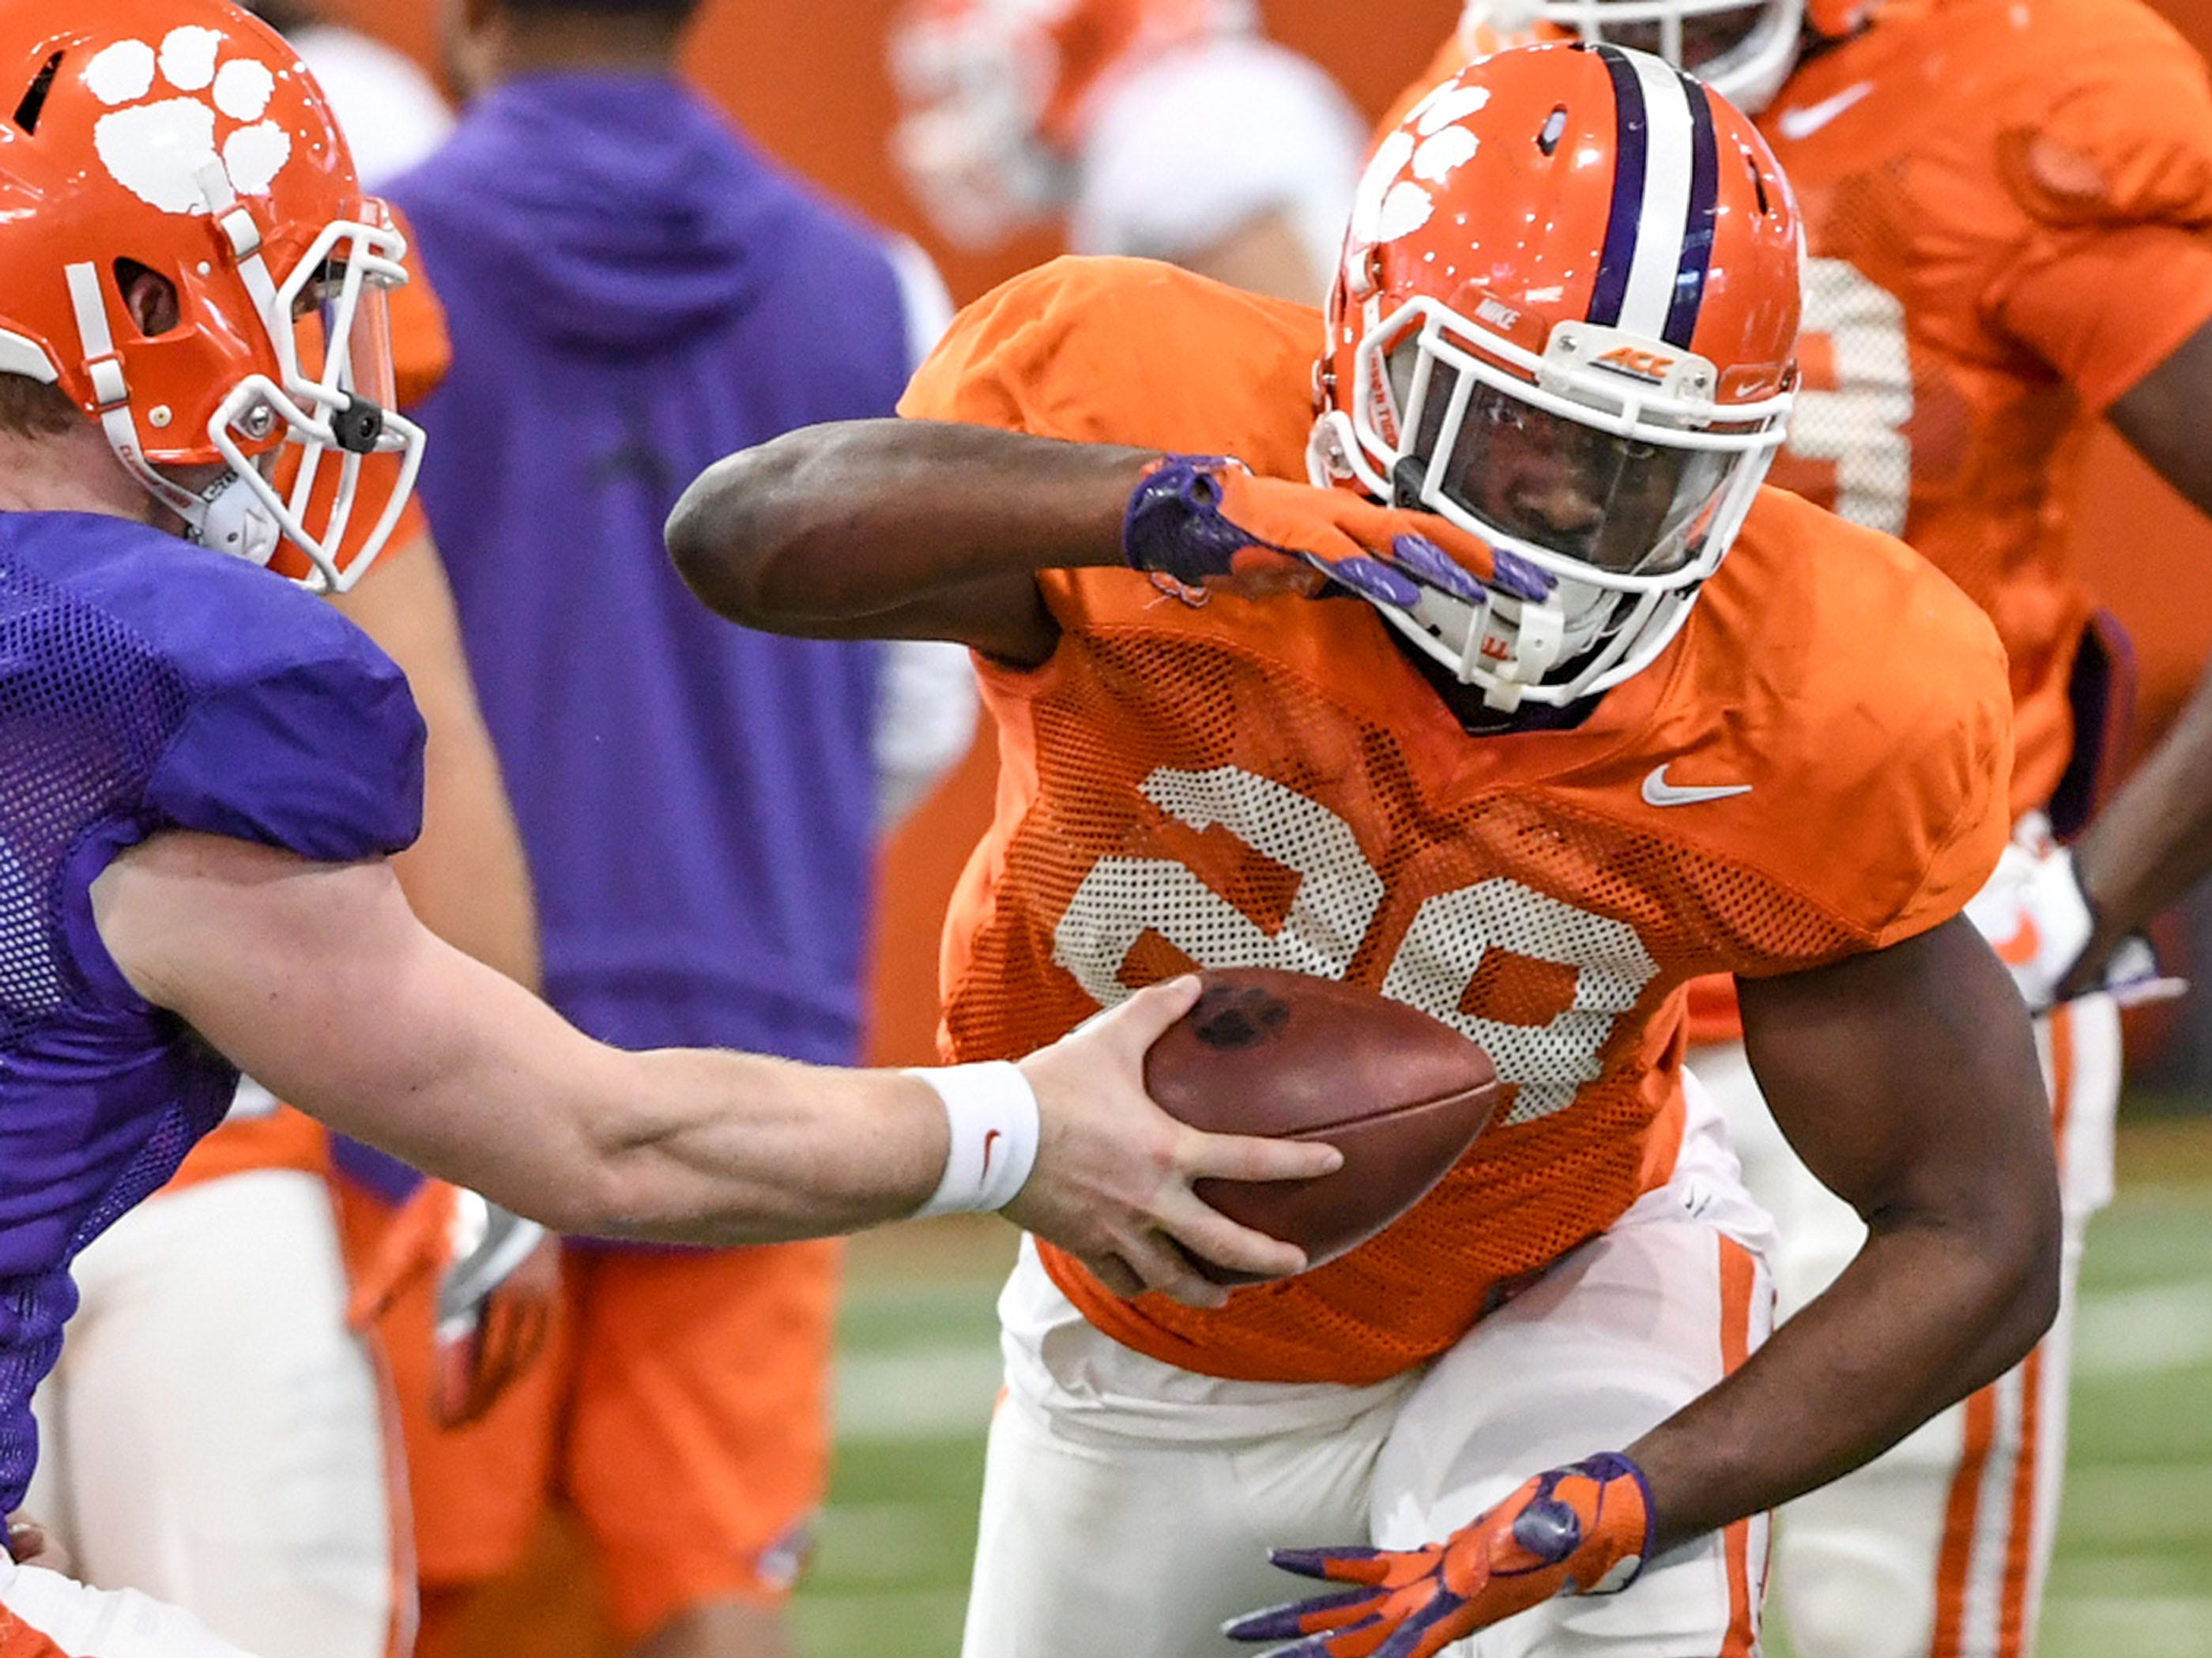 Clemson running back Tavien Feaster (28) takes a handoff in a drill during practice at the Poe Indoor Facility in Clemson Monday.